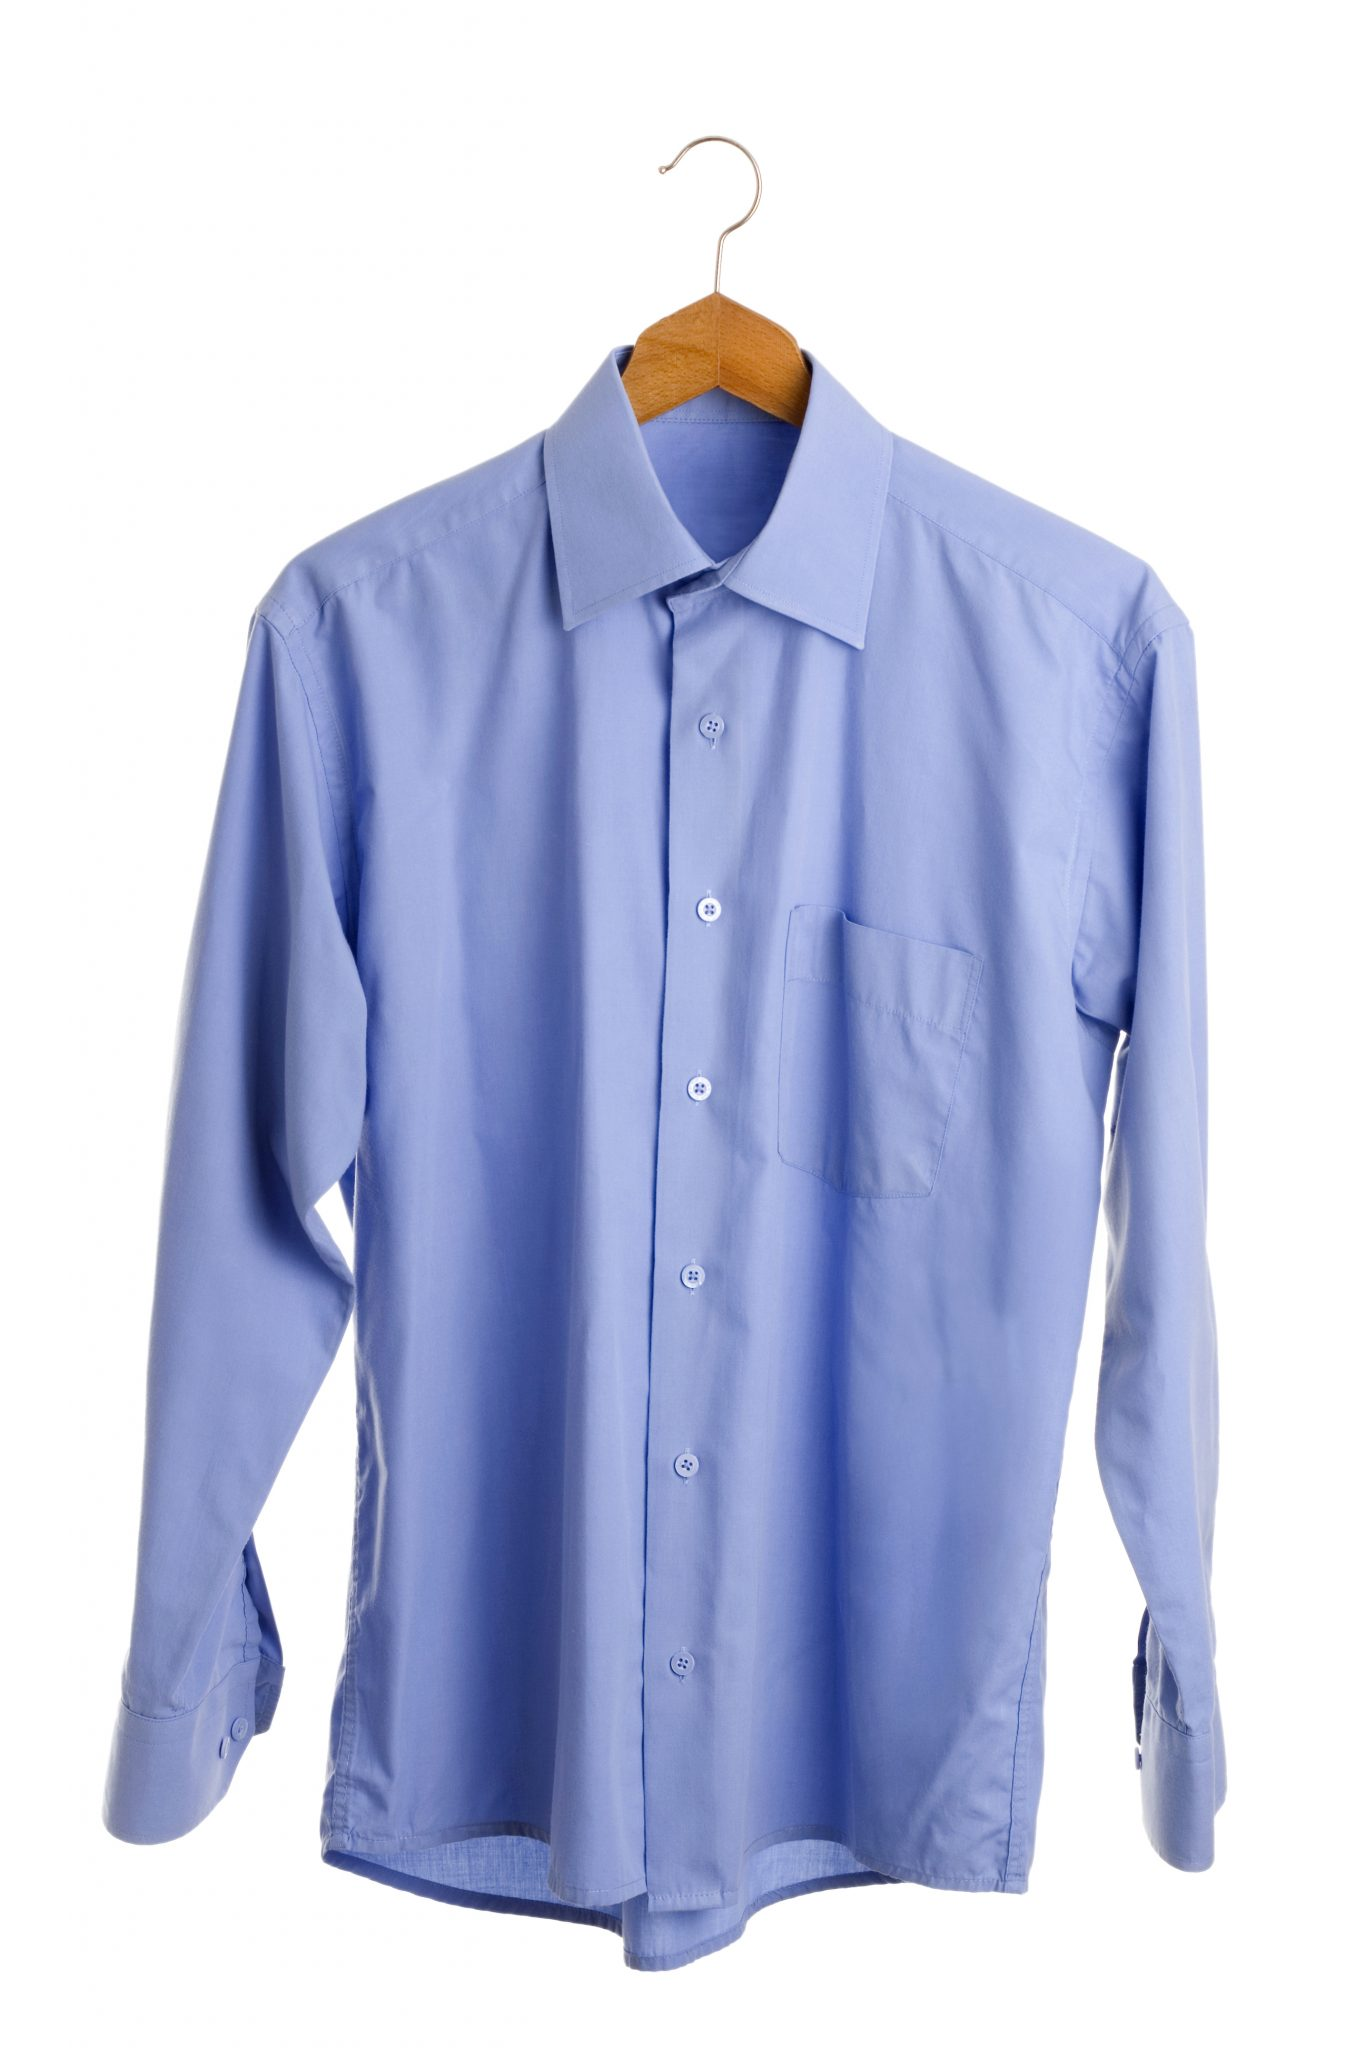 Dry Clean Shirt Dry Cleaning Laundry Delivery Service